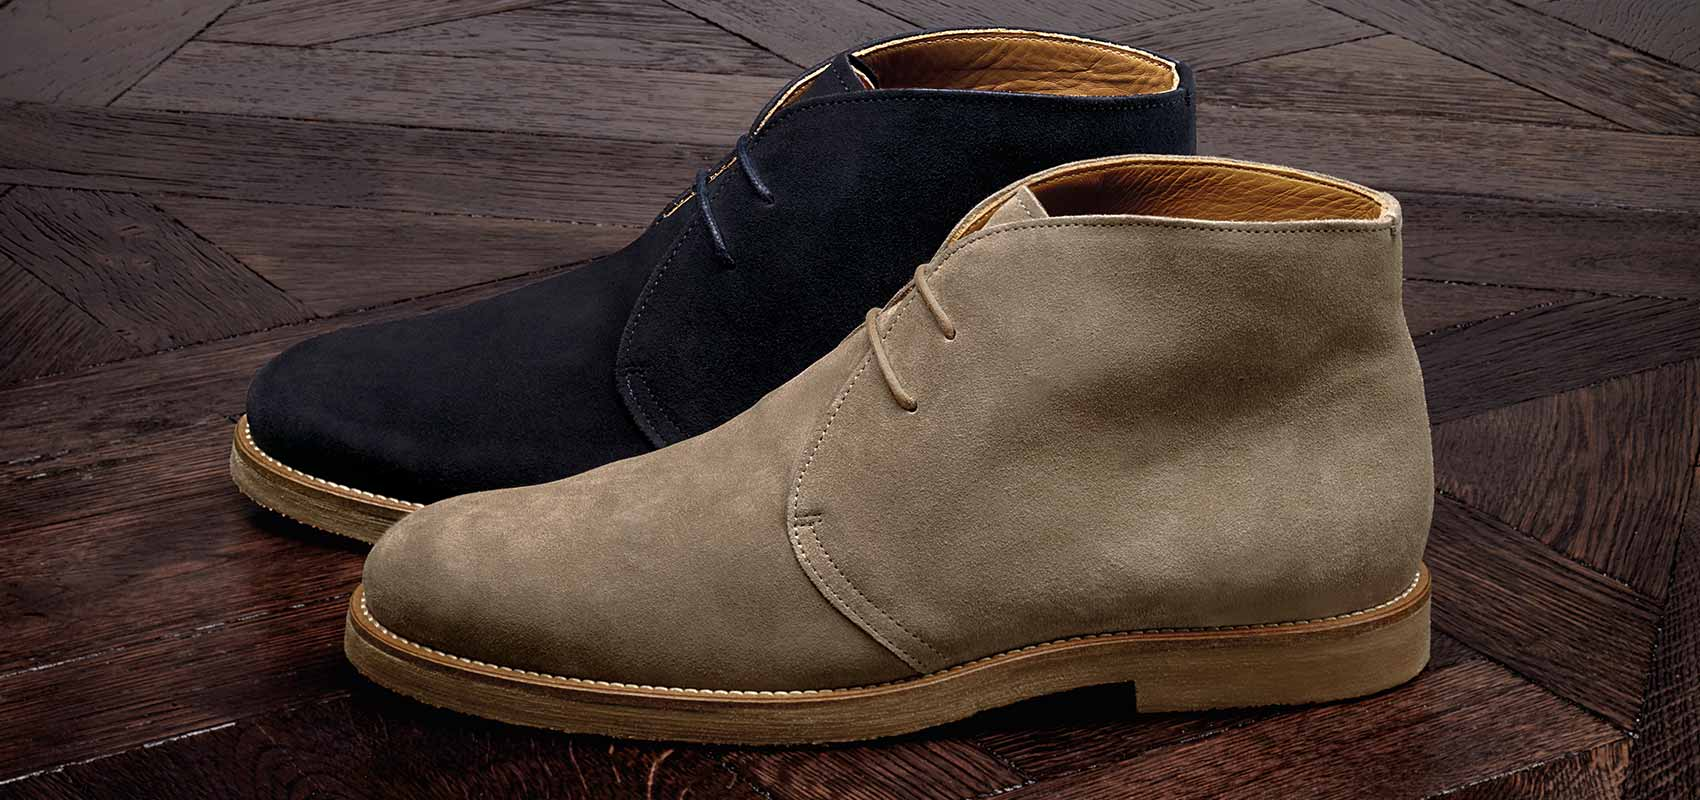 Charles Tyrwhitt Bottines